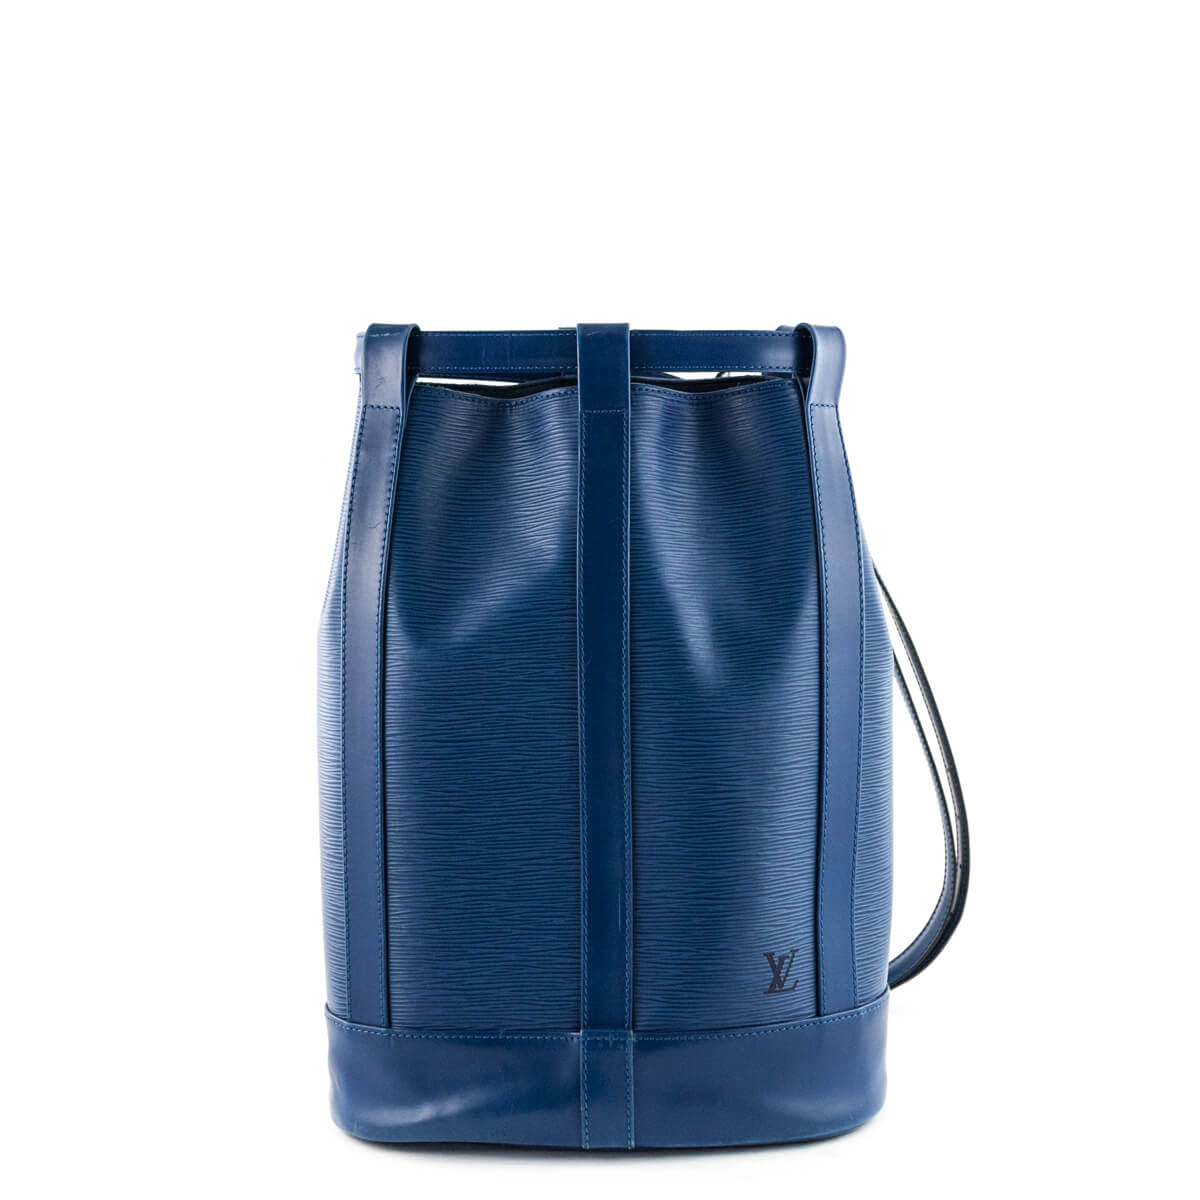 beee39ee1d6a Louis Vuitton Blue Epi Randonnee Backpack - LOVE that BAG - Preowned  Authentic Designer Handbags ...